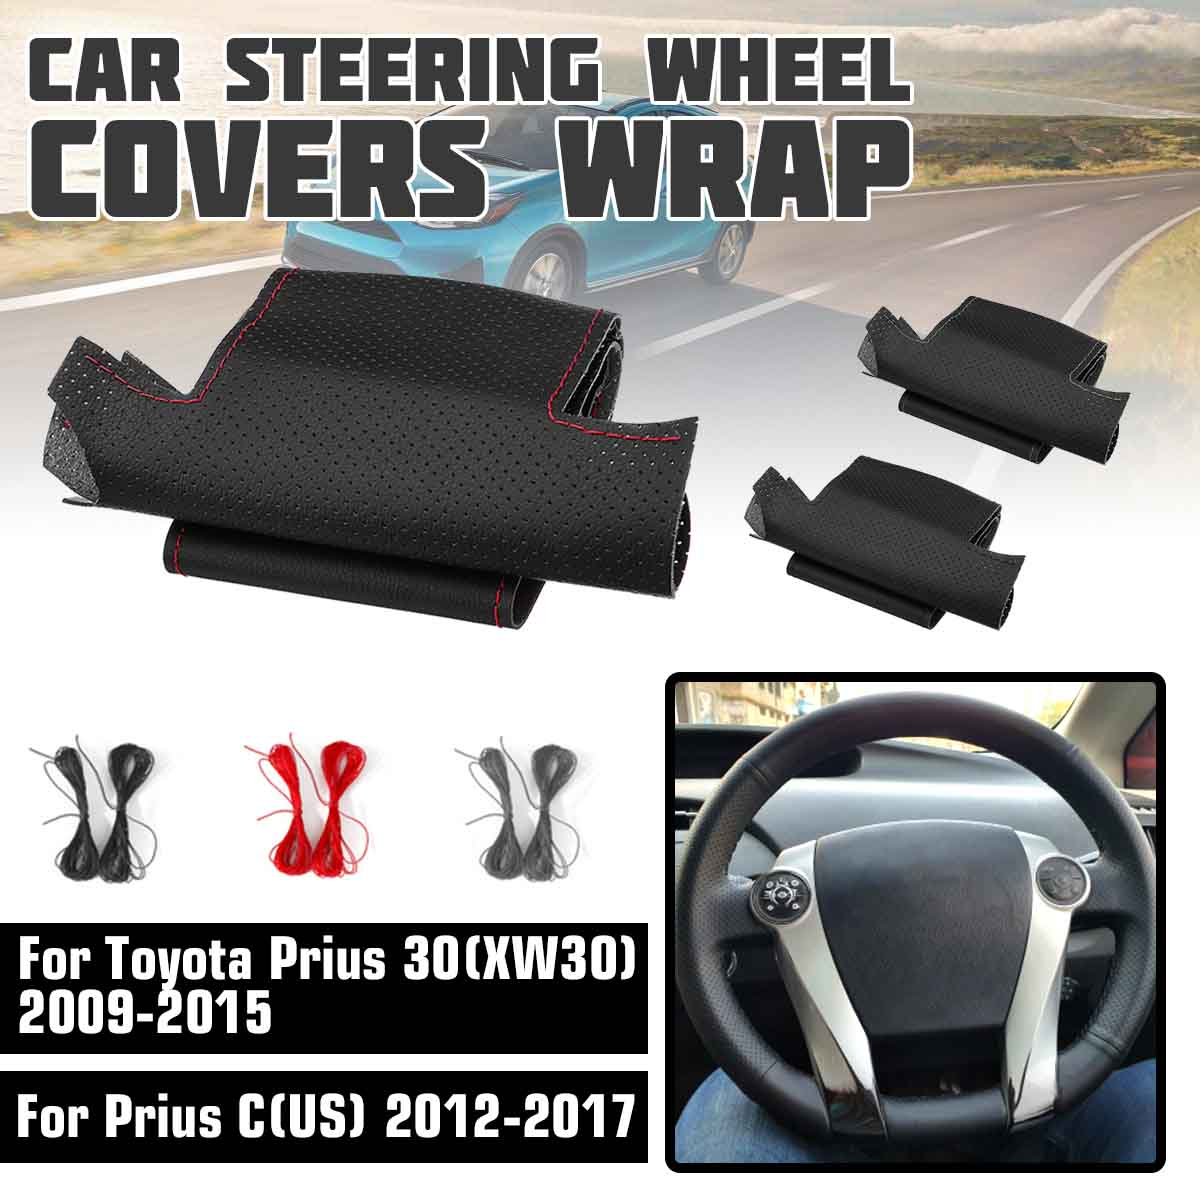 PU Leather Car Steering Wheel Cover Covers Wrap For Toyota Prius 30 XW30 2009 2010 2011 2012 - 2015 For Prius C (US) 2012-2017